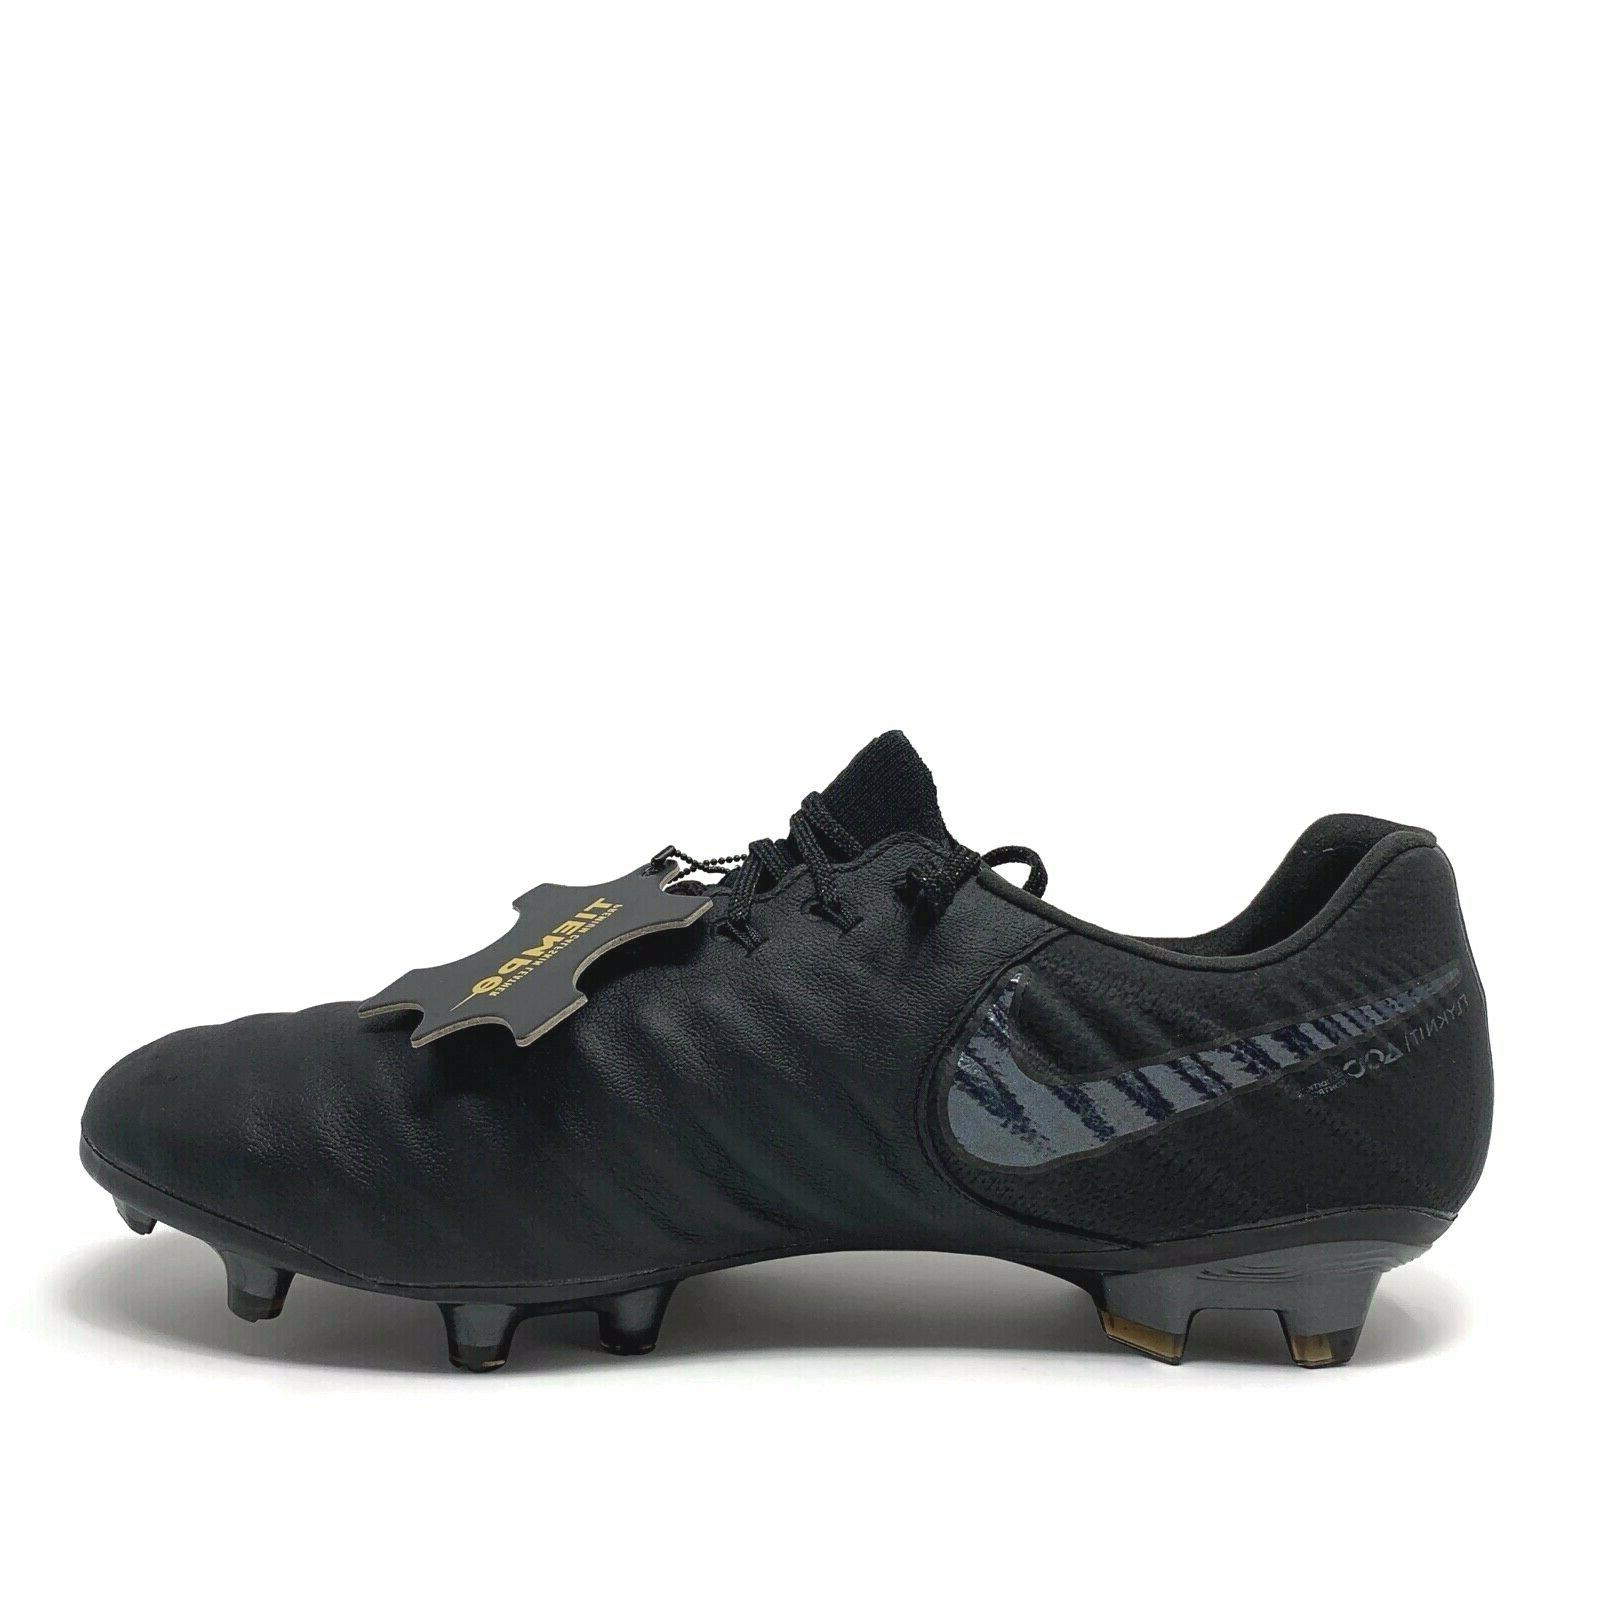 NIKE ELITE ACC SOCCER CLEATS BLACK SIZE